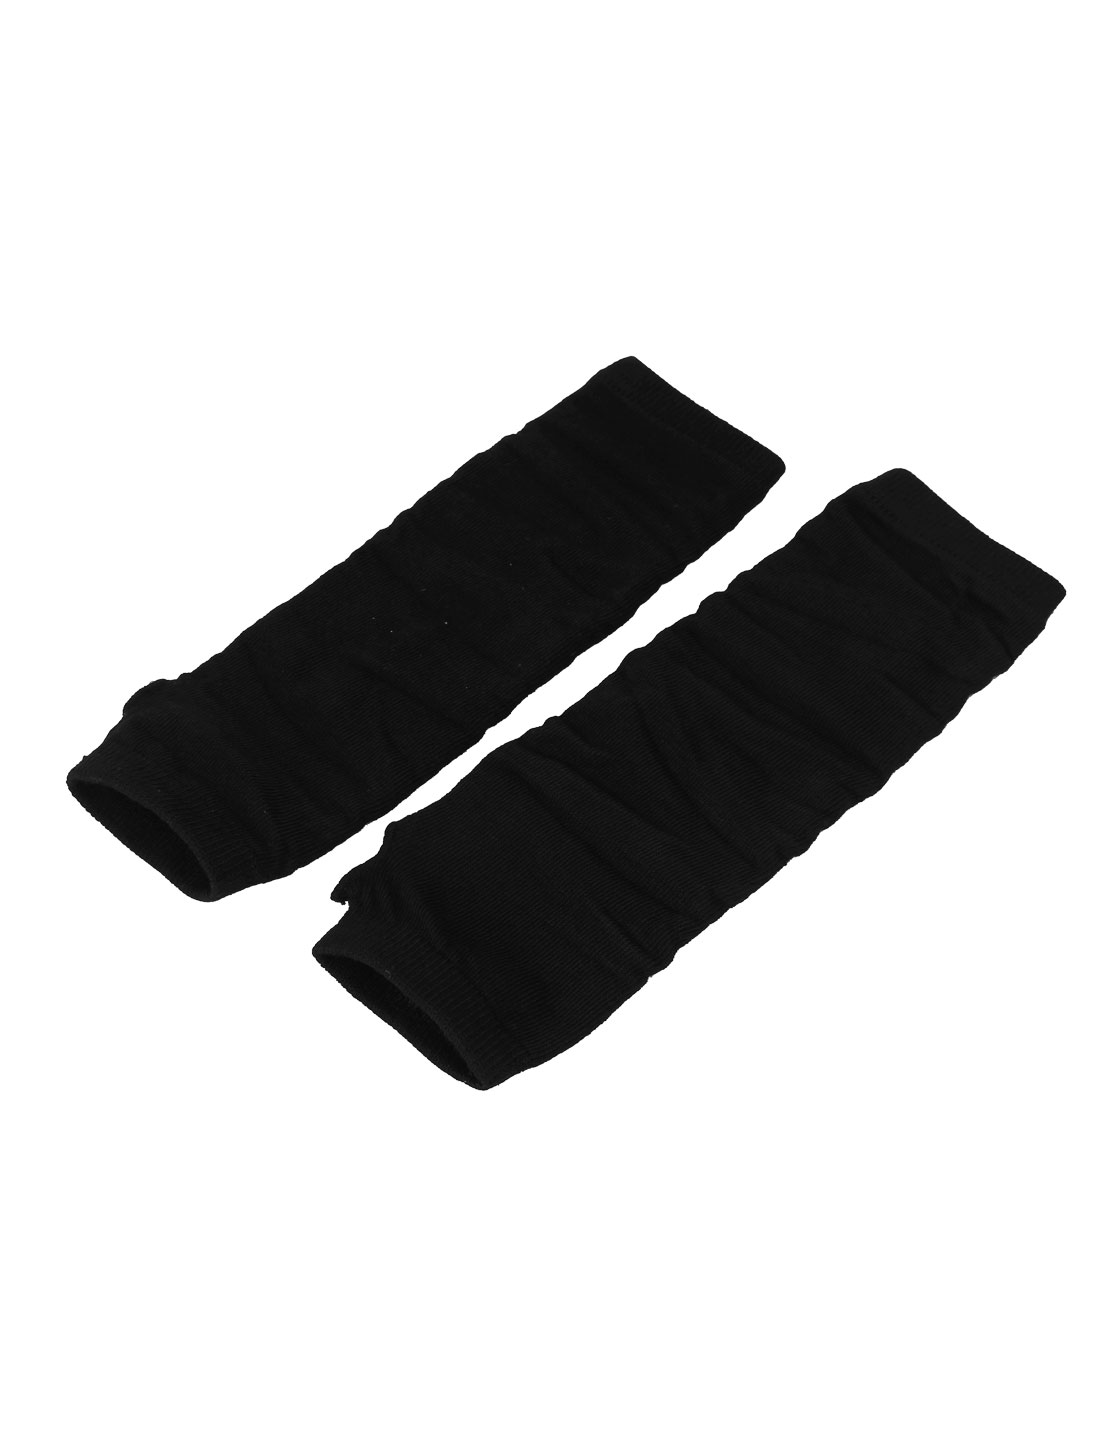 Women Winter Stretchy Sleeve Knitted Arm Warmer Fingerless Gloves Black Pair